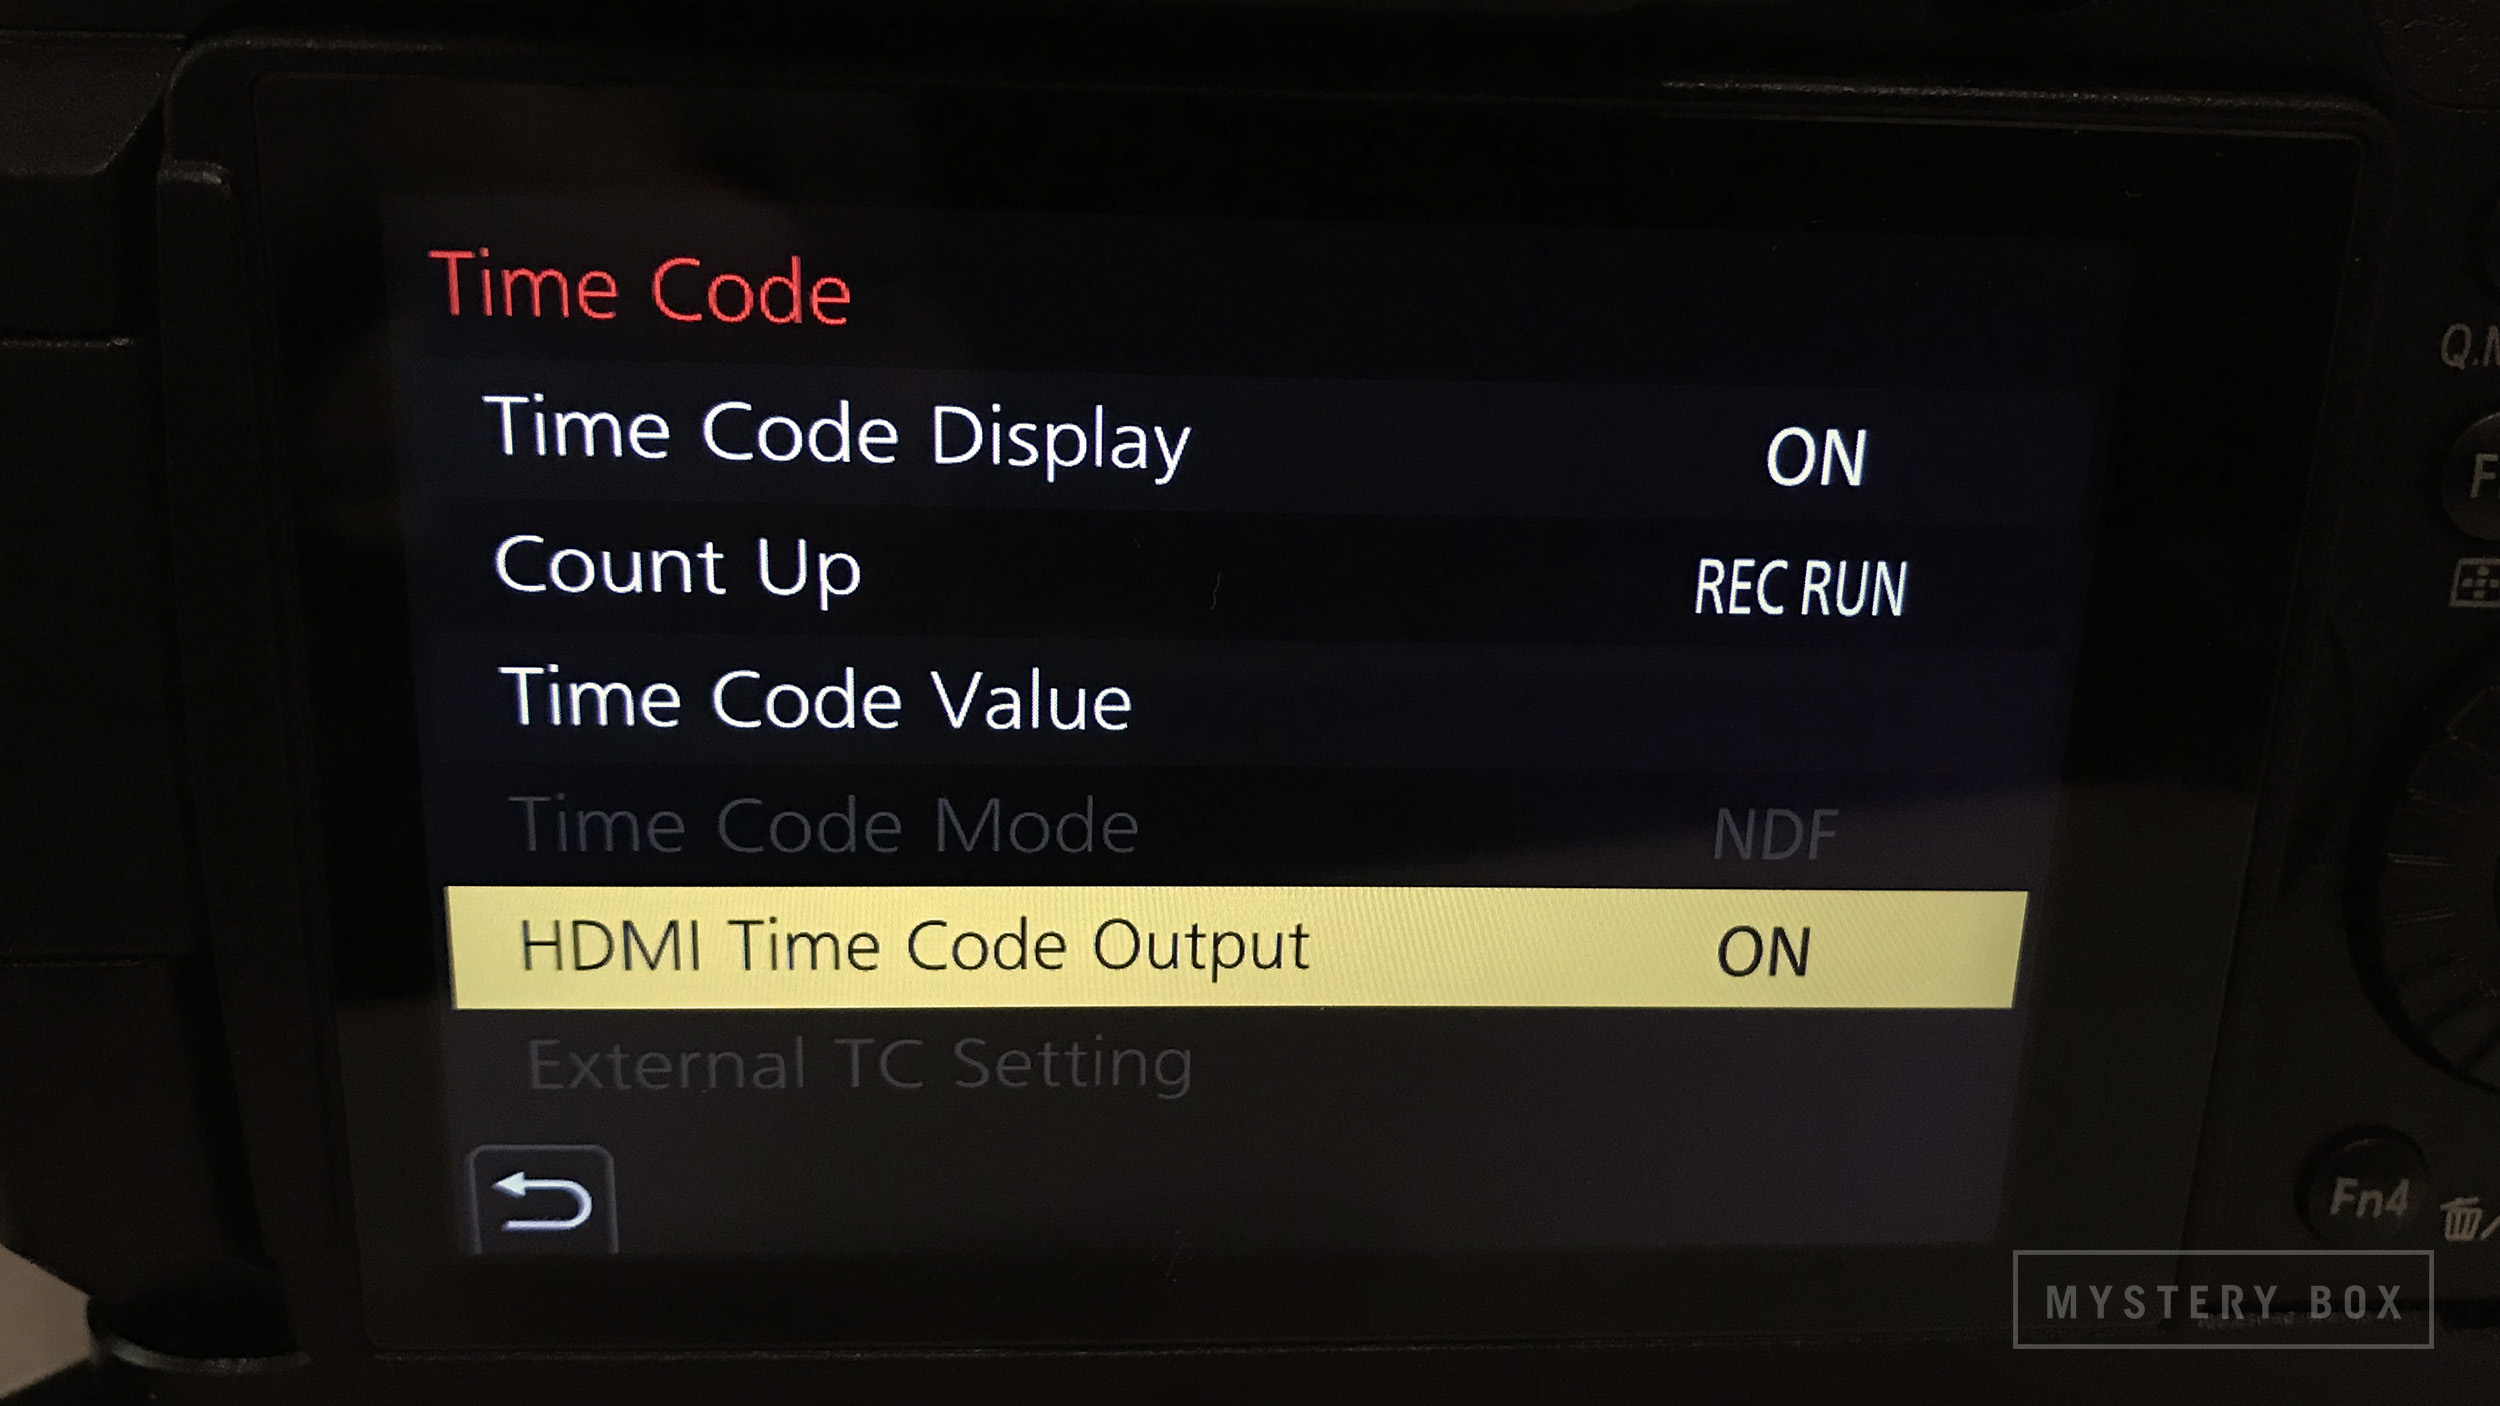 - Turn on HDMI Time Code Output so the Shogun/Ninja Inferno can match and record timecode (Menu -> Motion Picture -> HDMI Time Code Output):